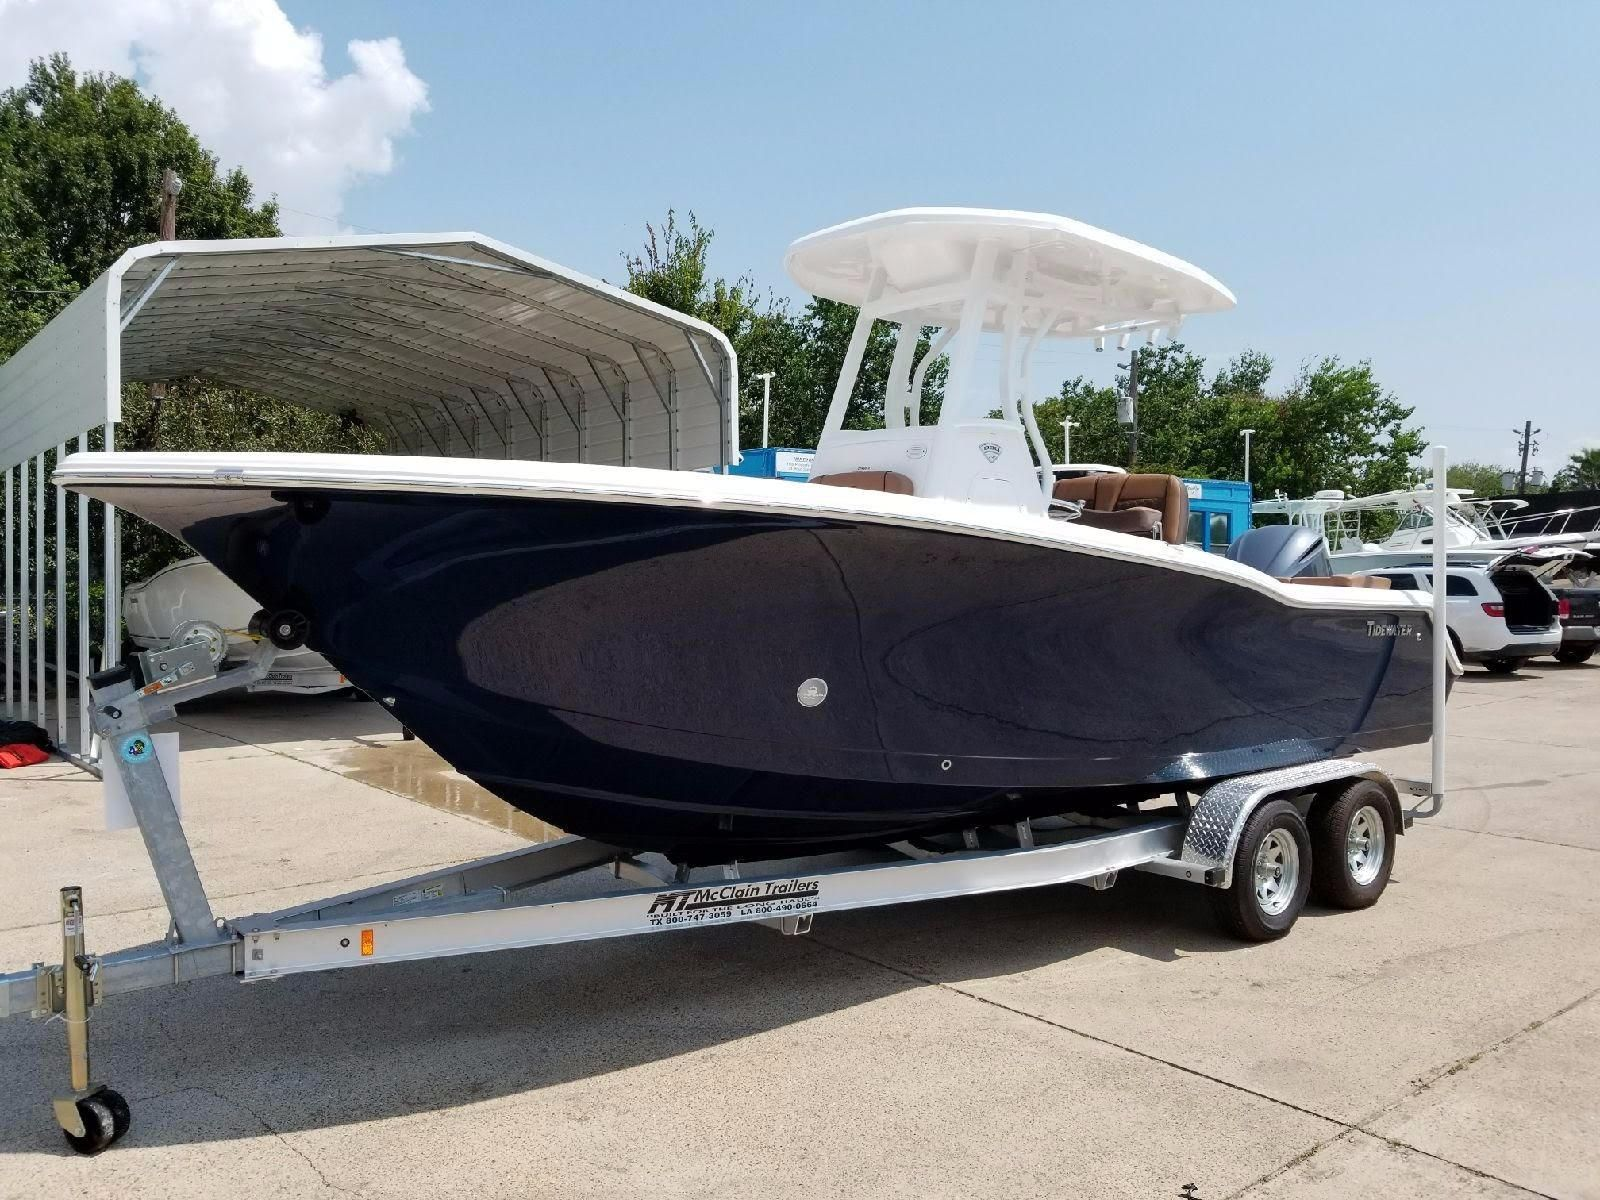 2017 tidewater 230 lxf power boat for sale www for Tidewater 230 for sale